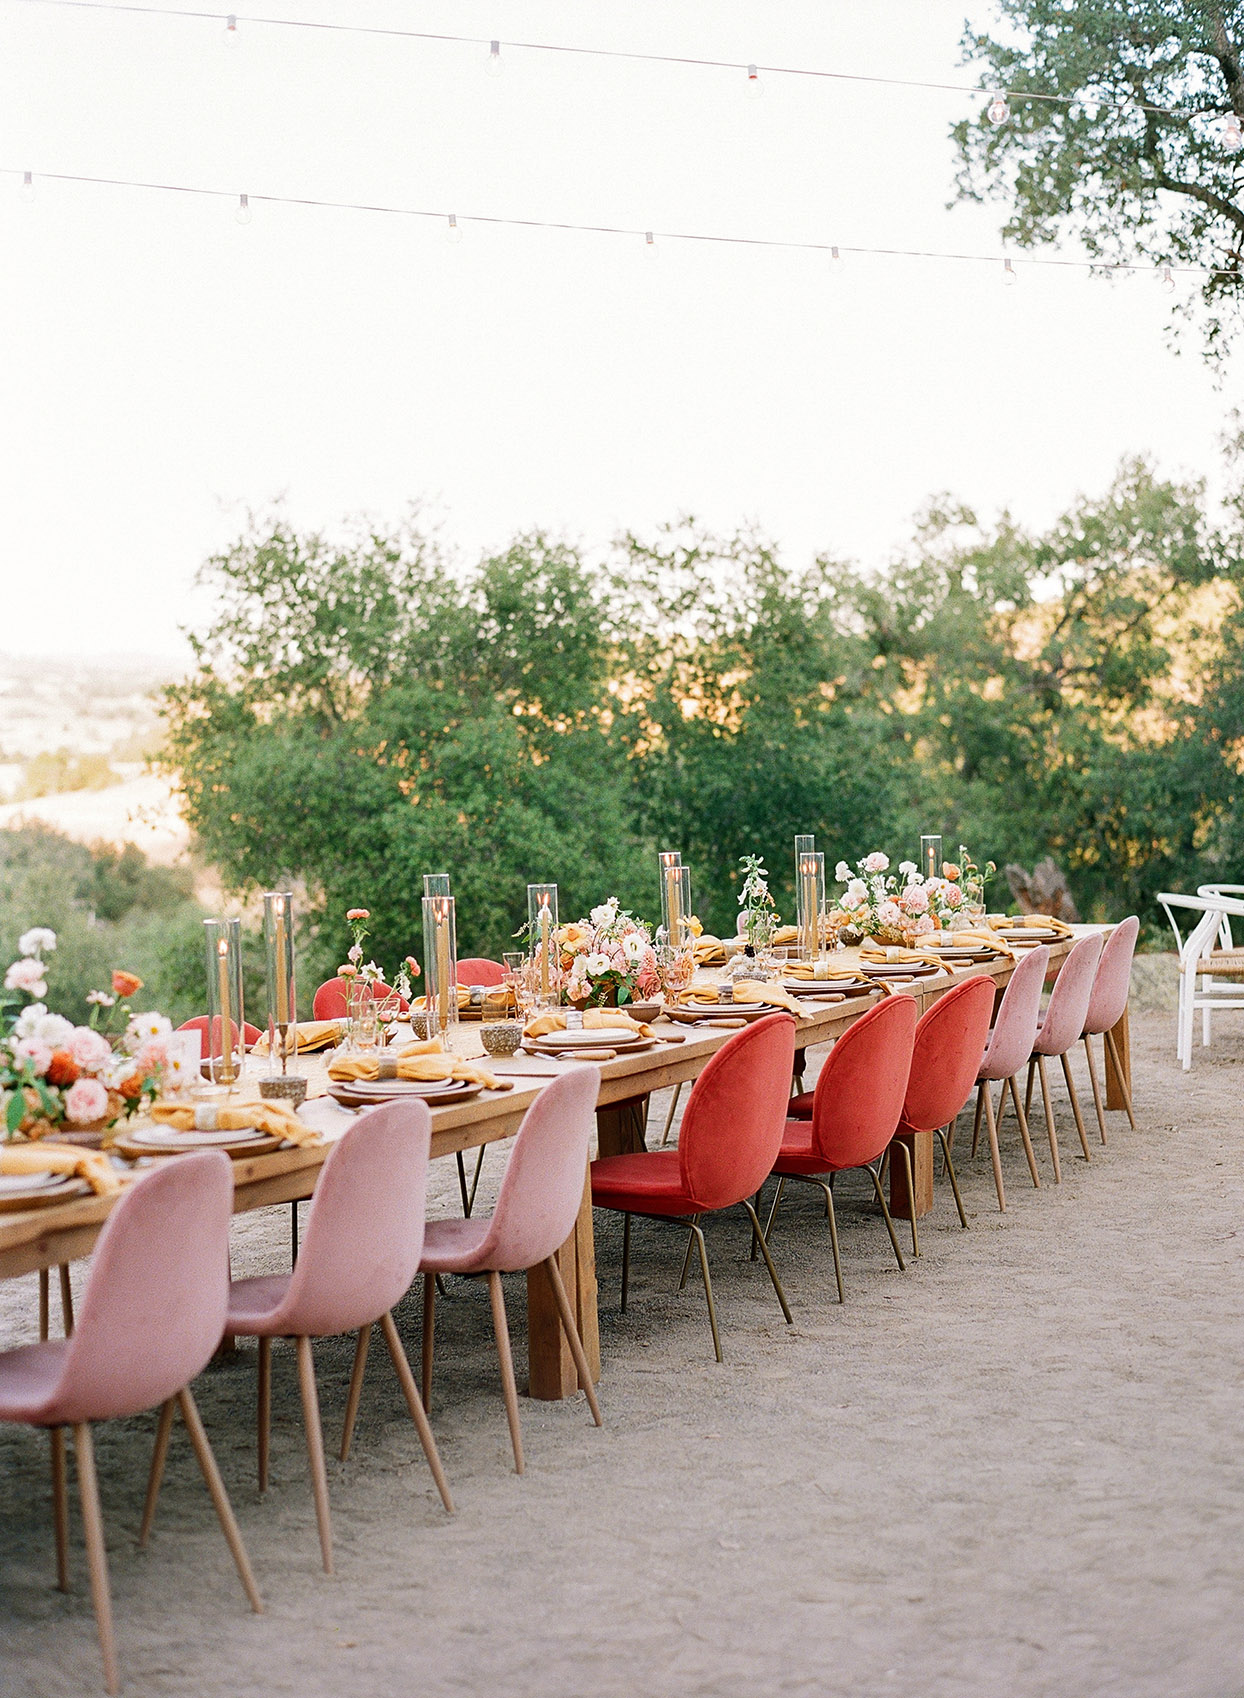 Molly & Garrett Real Wedding Reception Table and Chairs